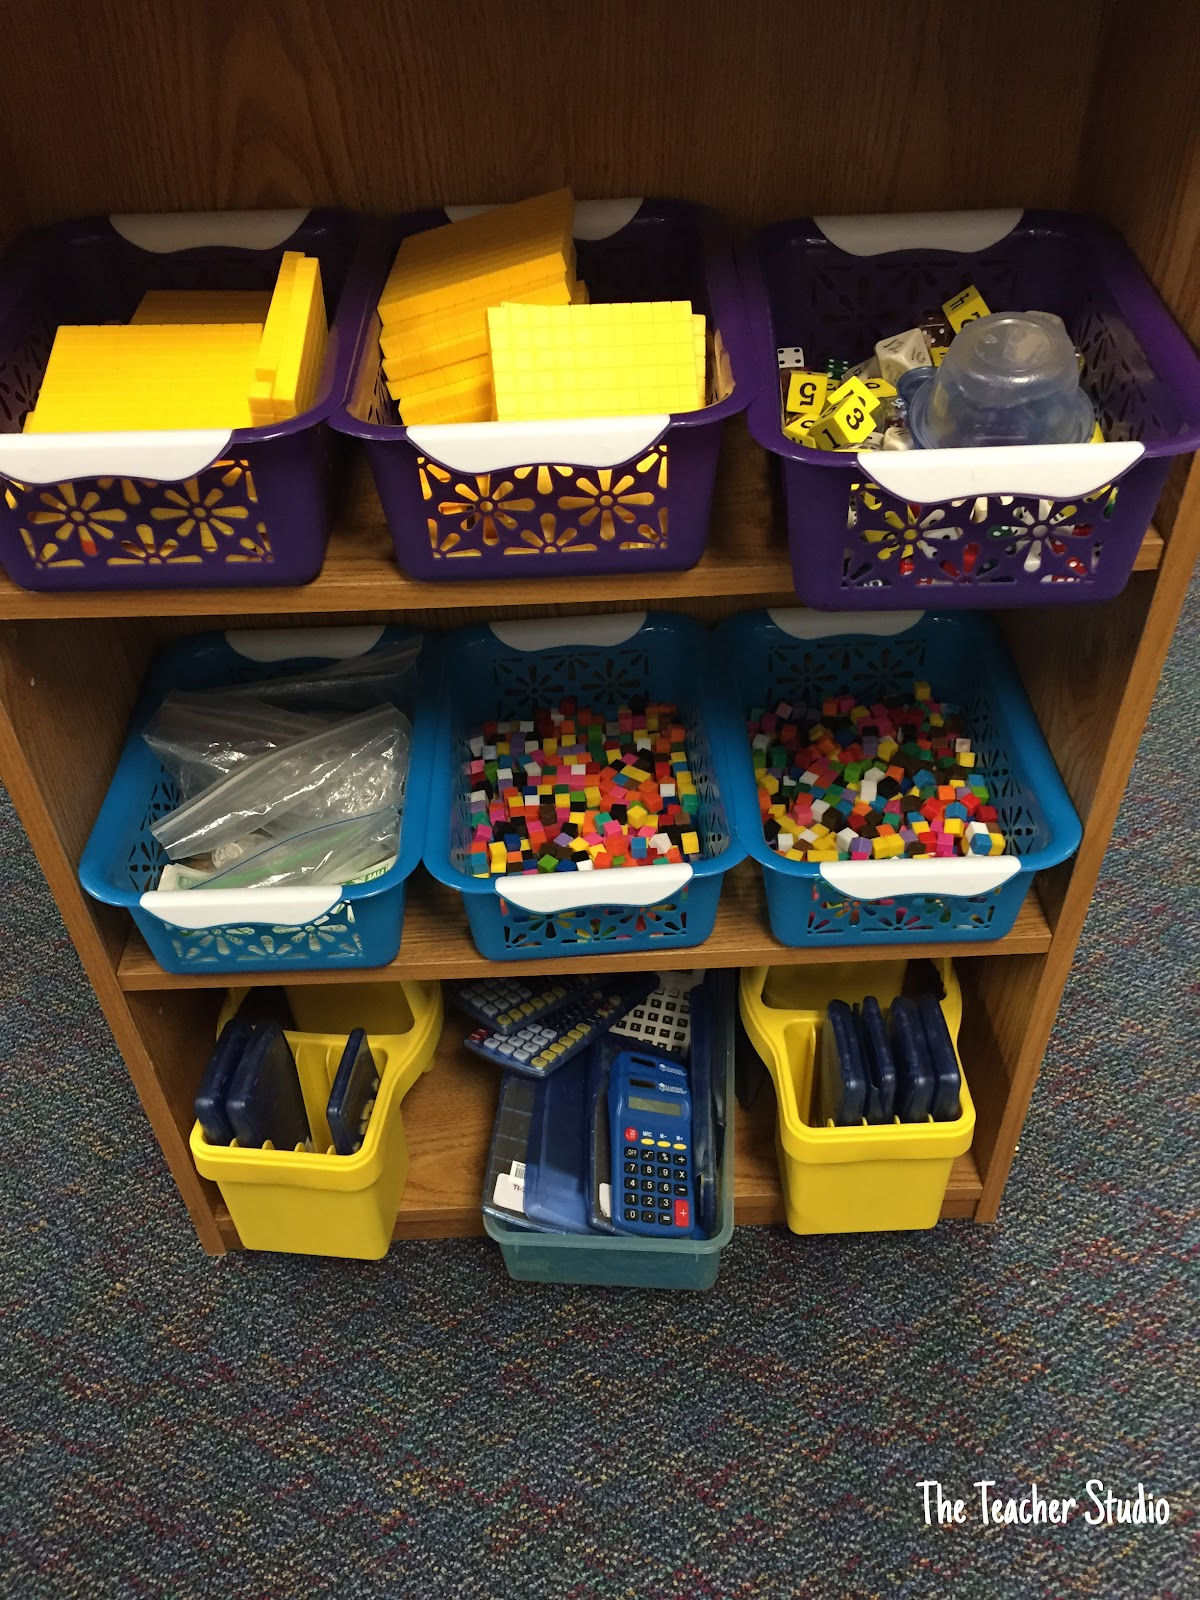 """One of our classroom jobs is """"Math Zone Organizer"""". Here is part of our Math Zone! Learn more about how I do math workshop in the post."""